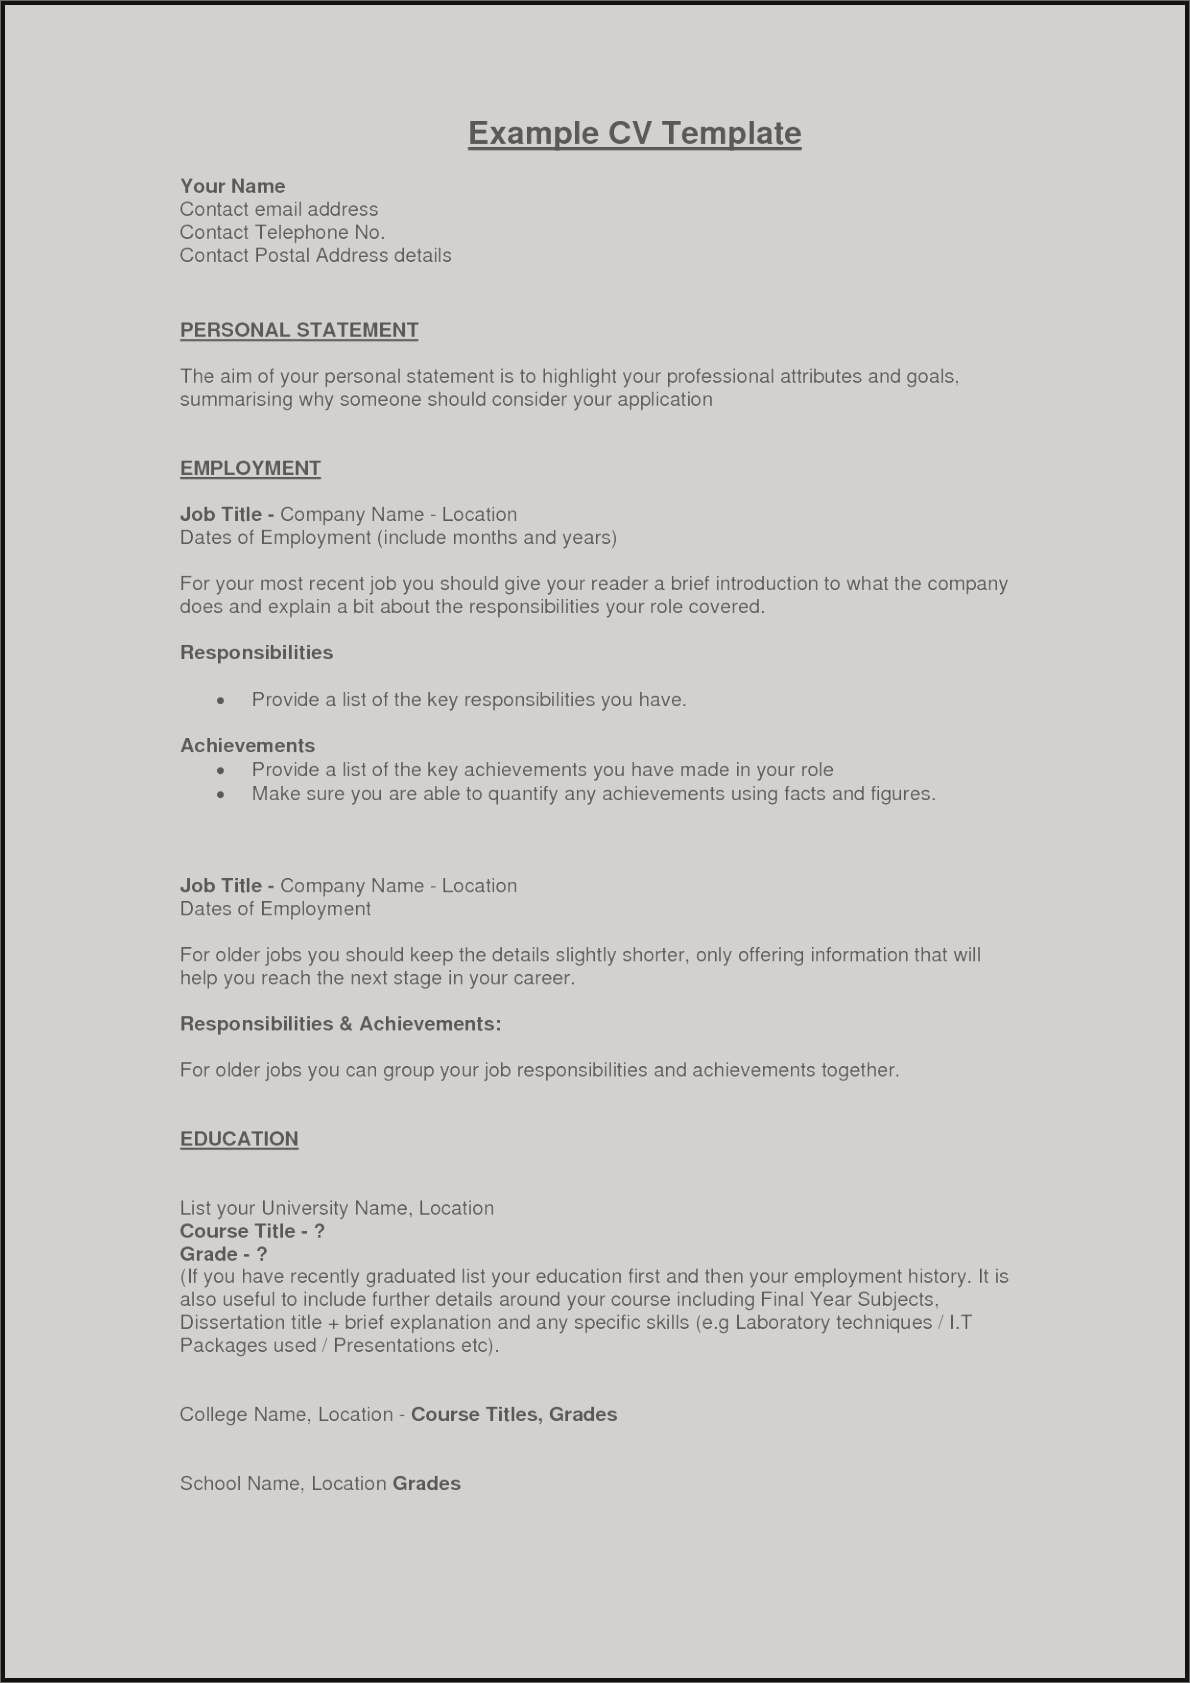 Making A Resume - Business Owner Resume Awesome Example Perfect Resume Fresh Examples